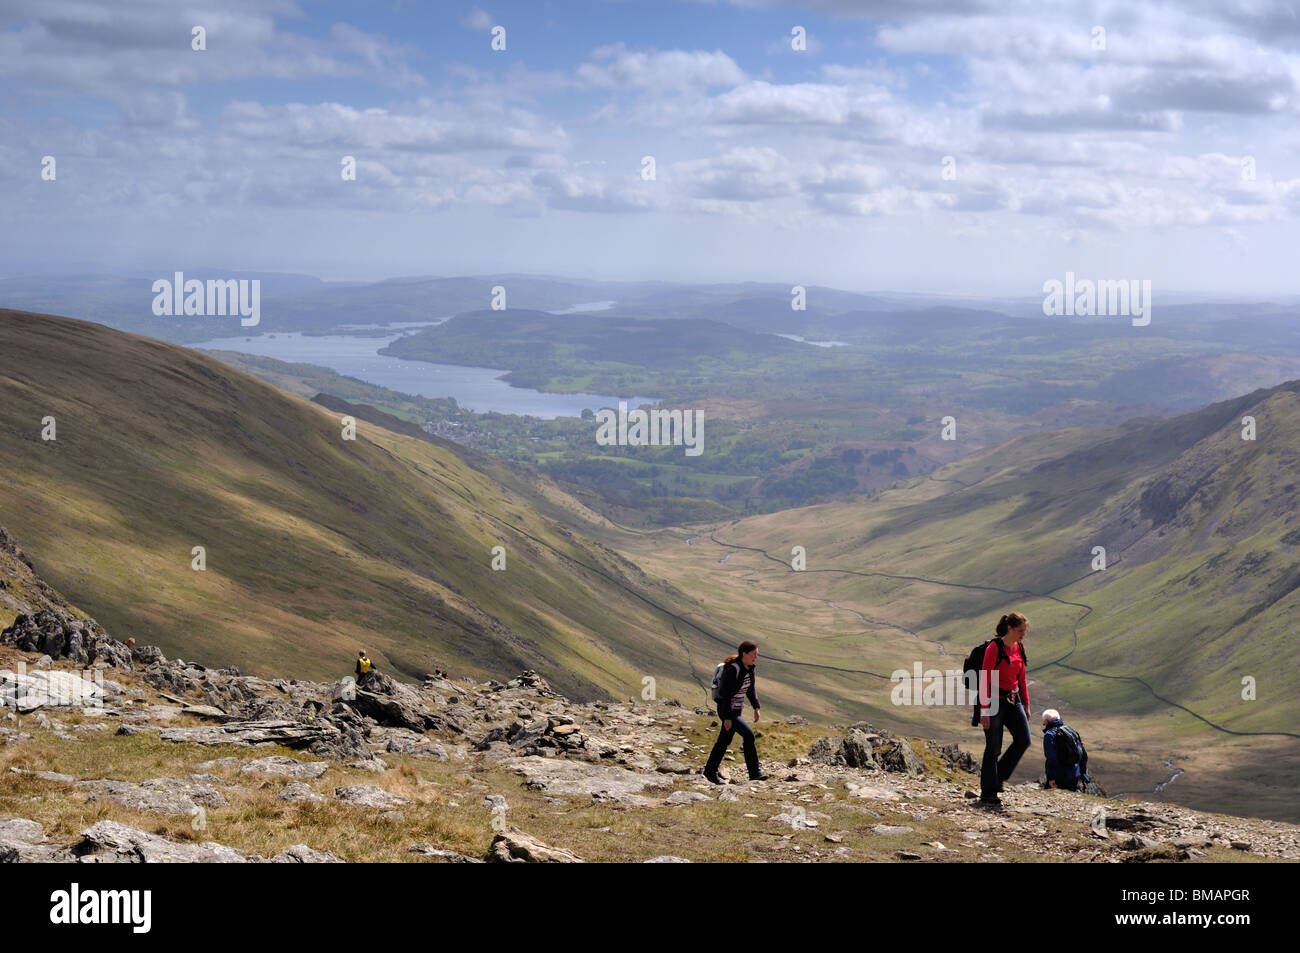 Walkers on Hart Crag in the Lake District with Ambleside and Lake Windermere in the distance - Stock Image